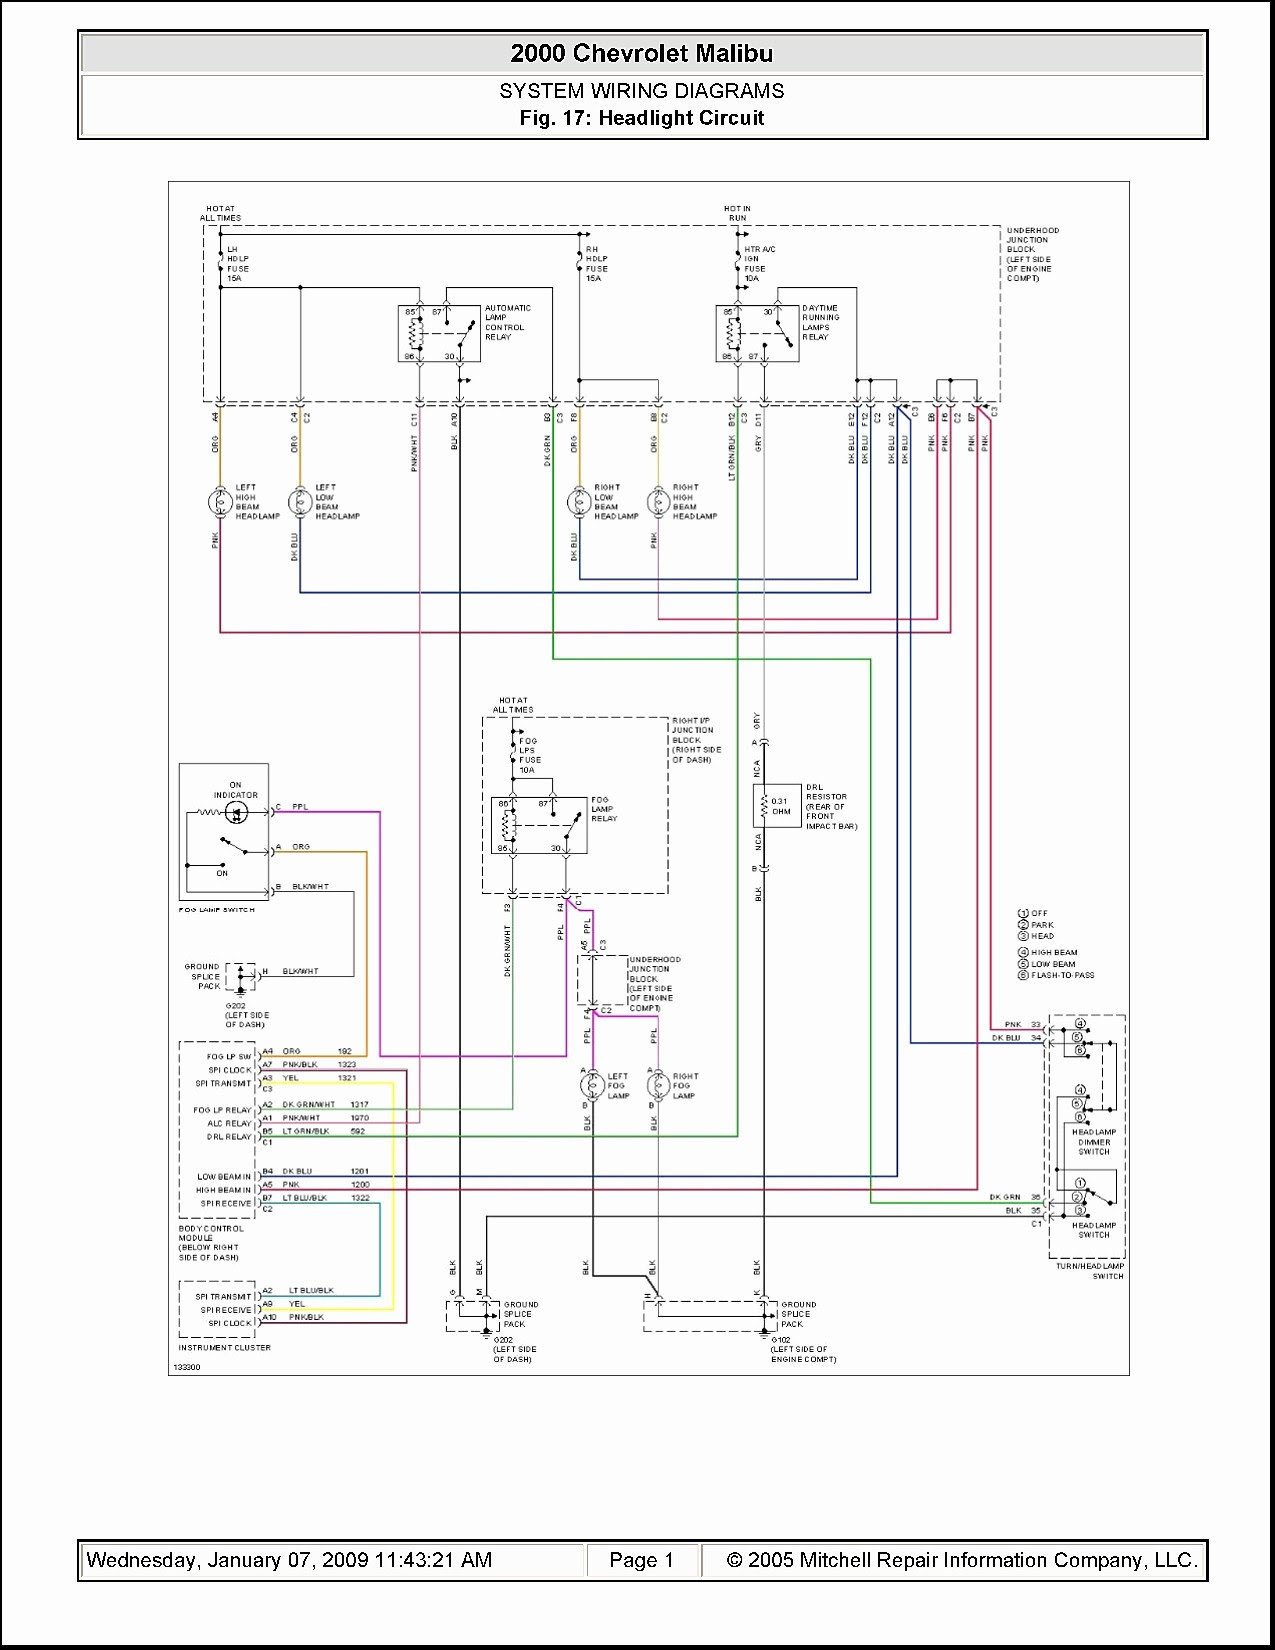 Hyundai Wiring Diagram - Wiring Diagrams